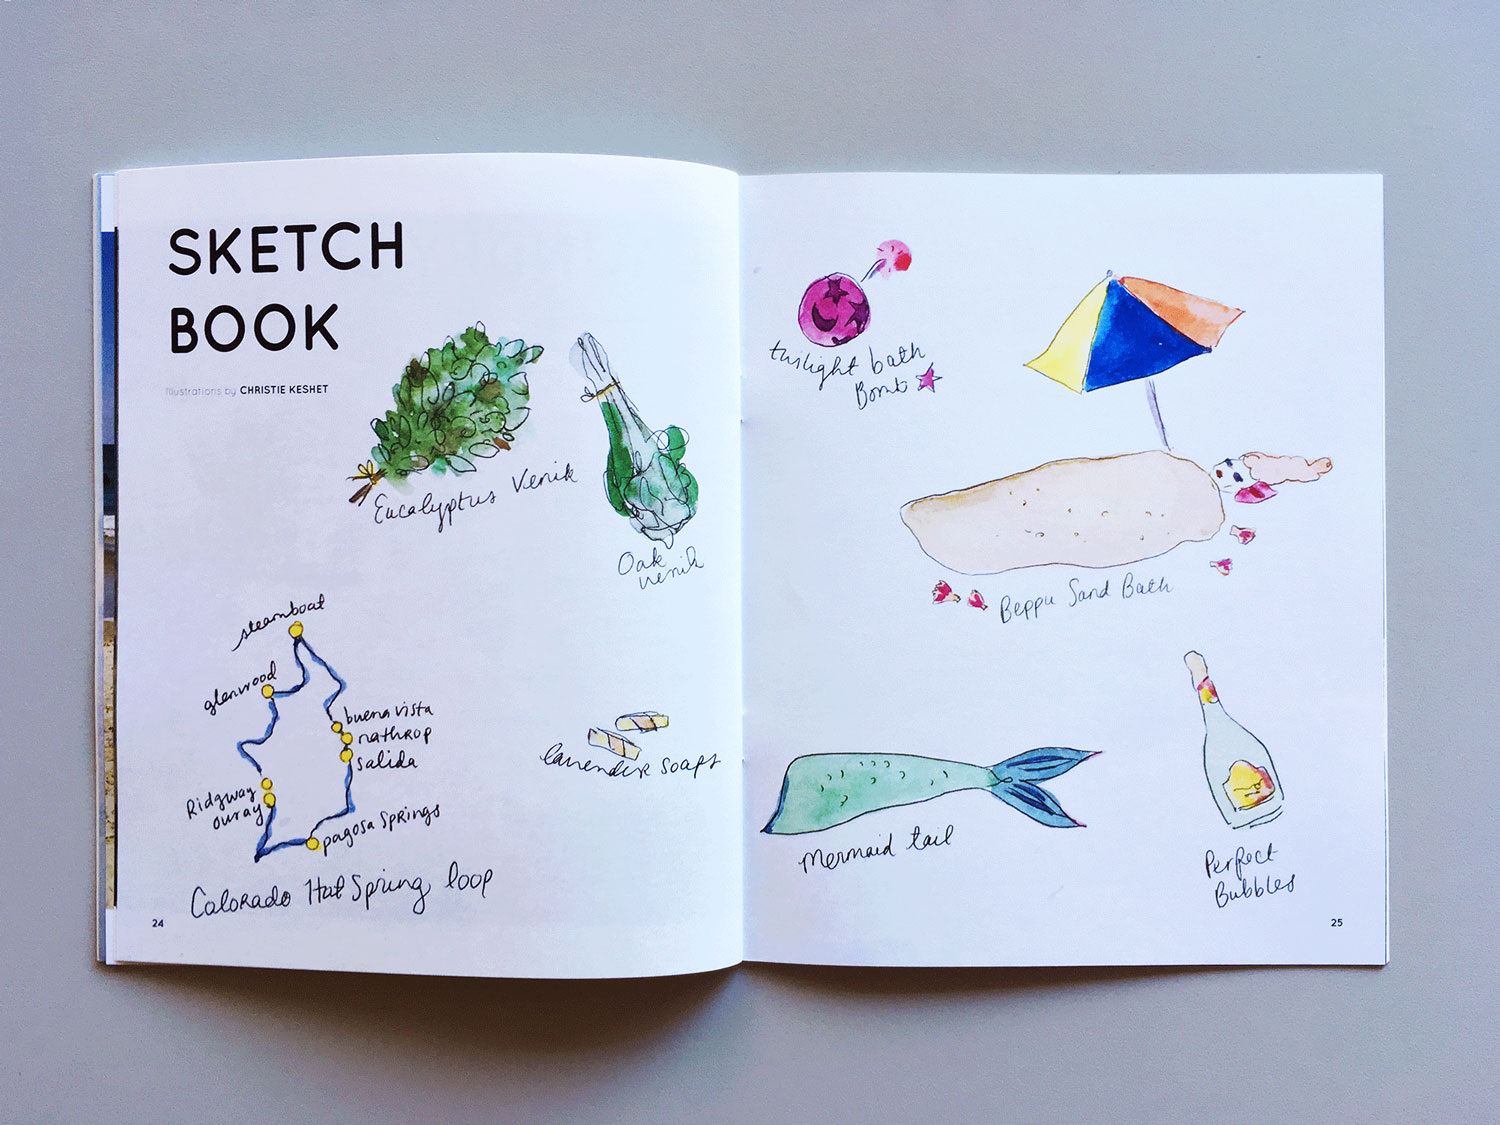 Interior spread of a section called SKETCH BOOK, featuring illustrations of bathing accessories like an oak venik and a mermaid tail